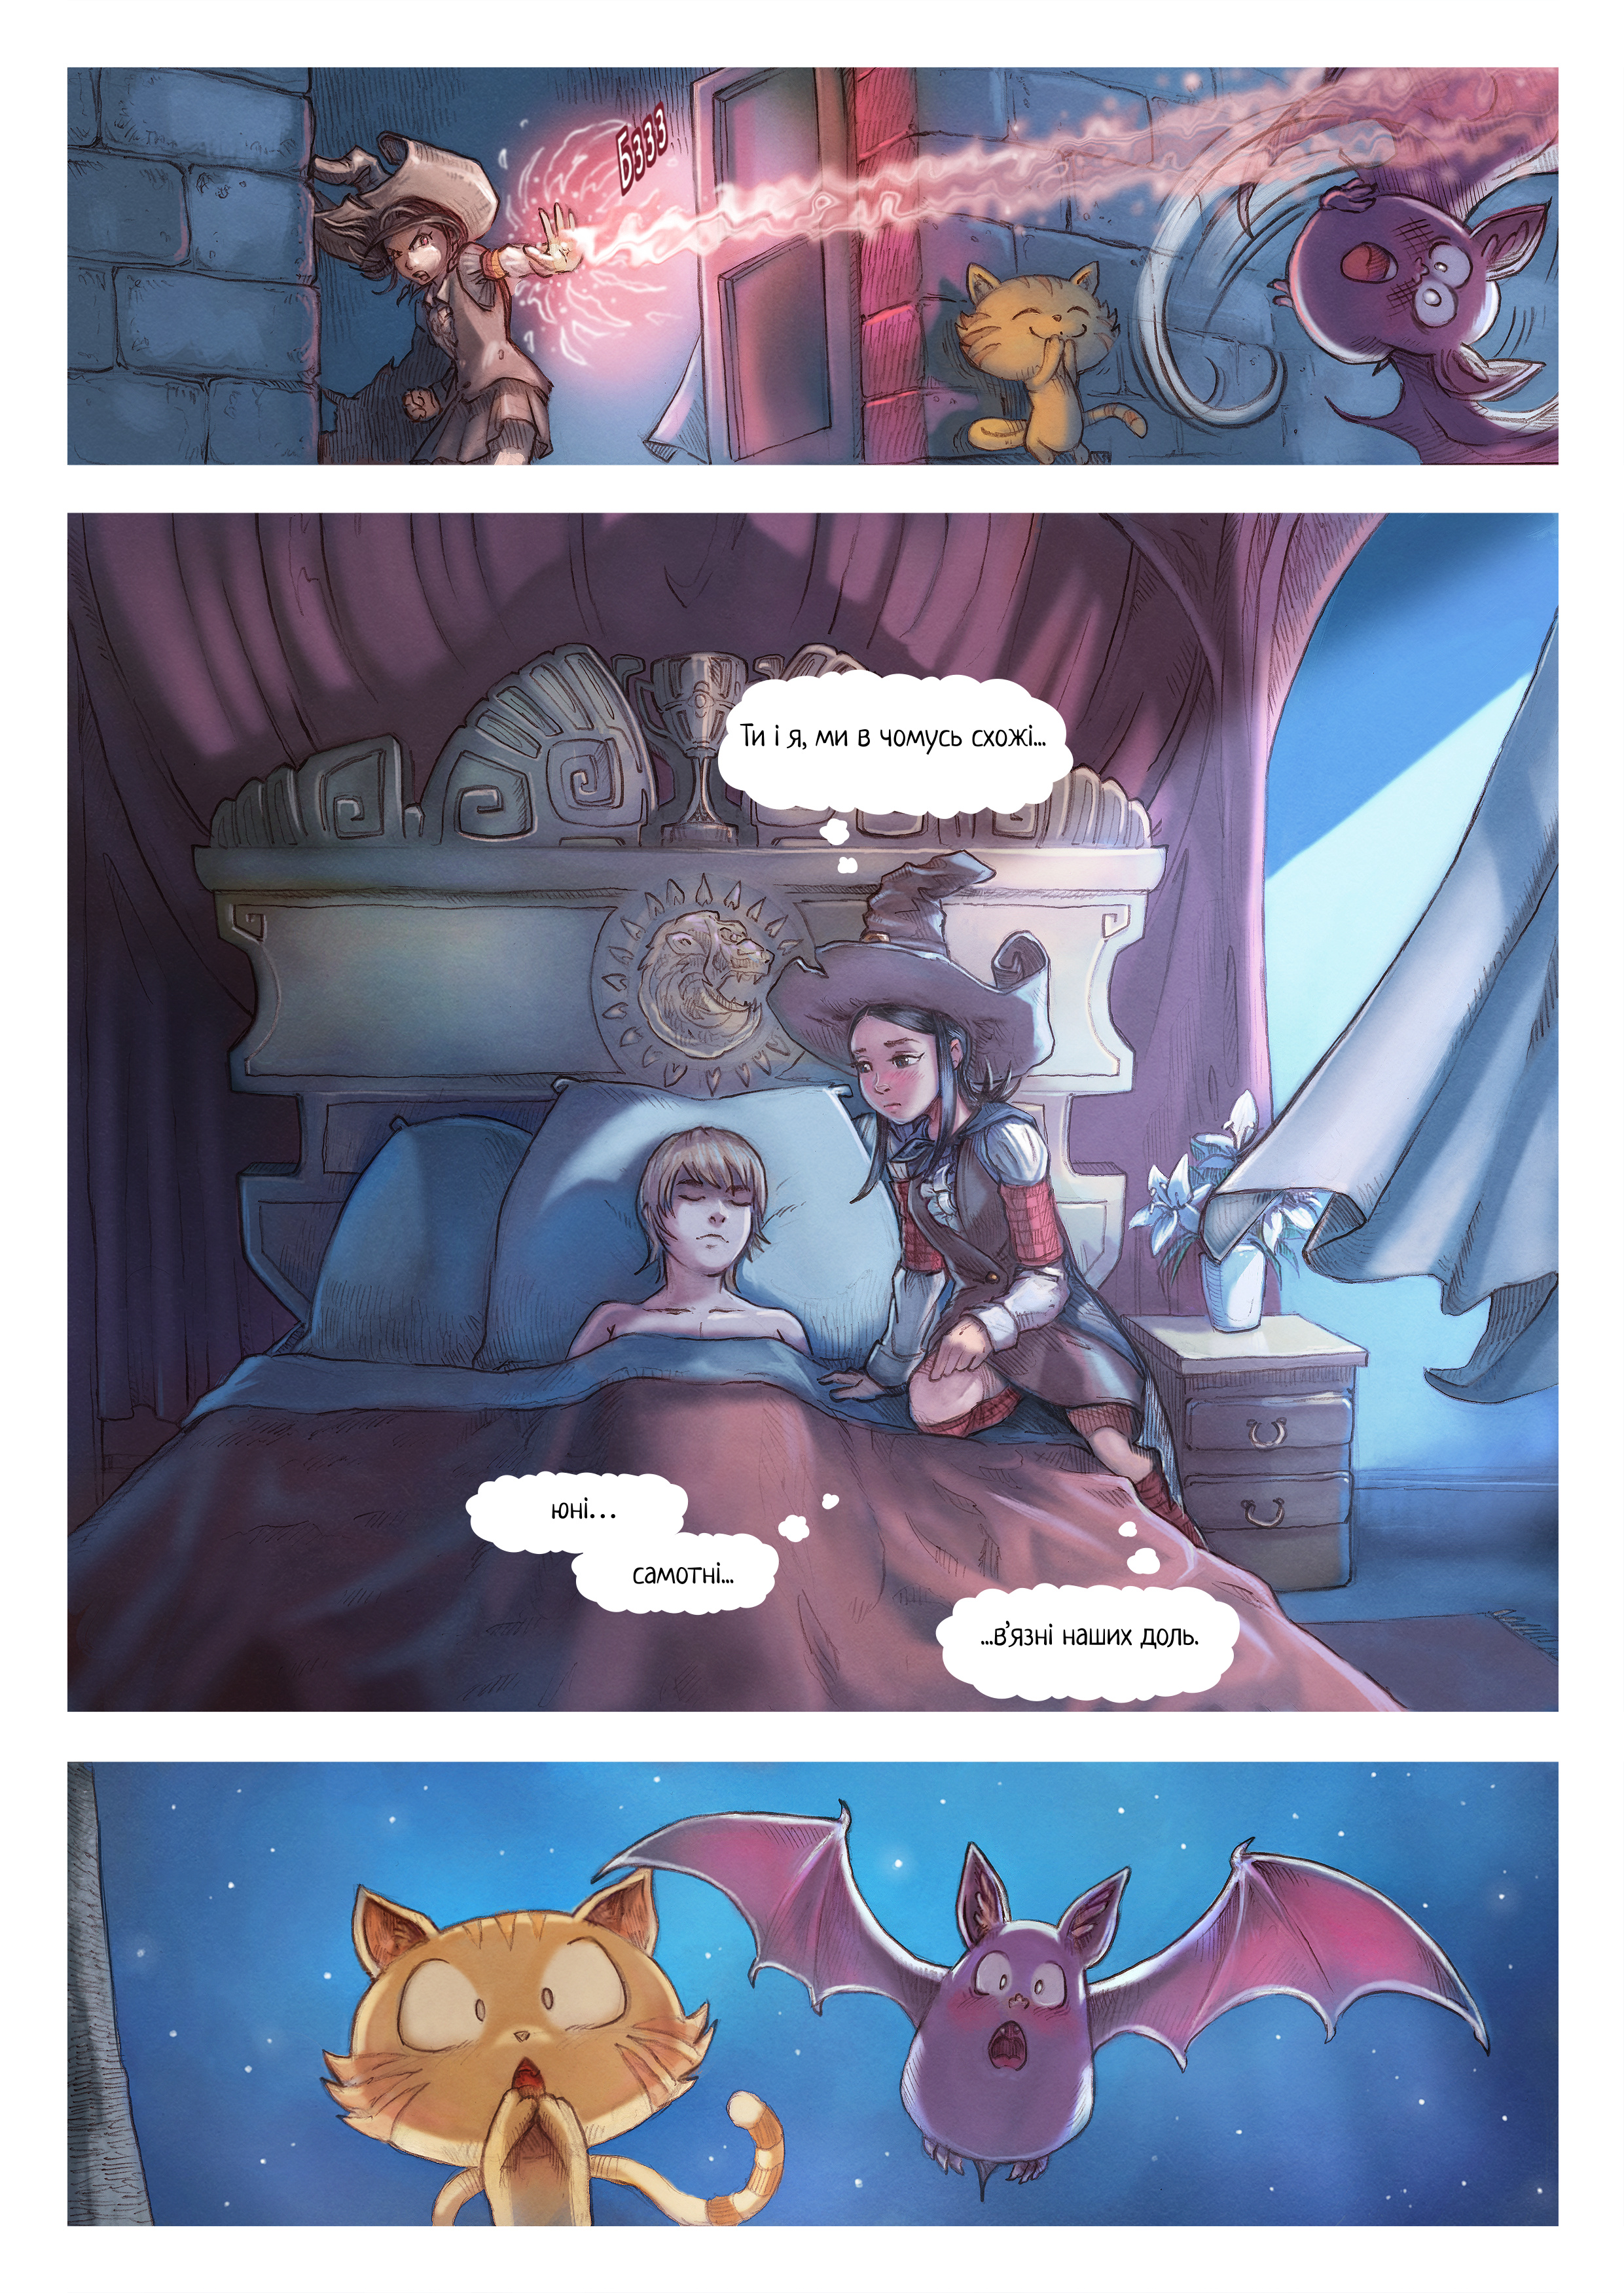 A webcomic page of Pepper&Carrot, епізод 11 [uk], стор. 5